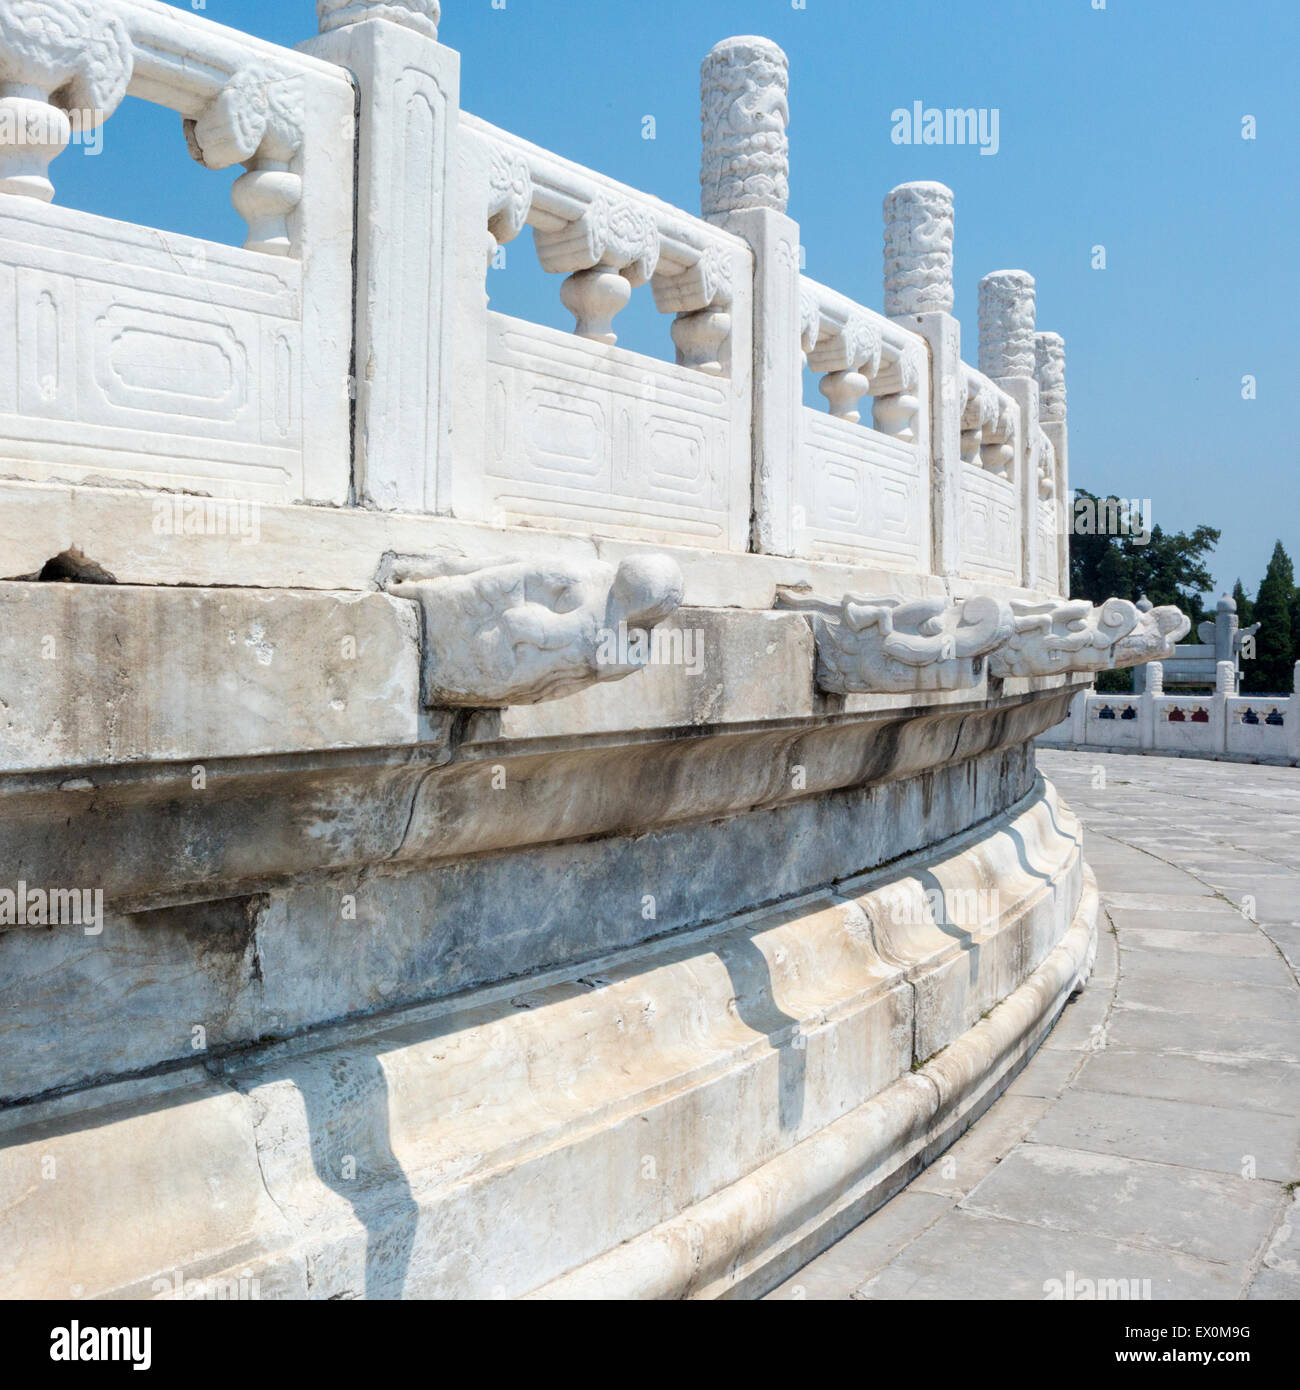 Marble balustrade at Temple of Heaven, Beijing, China - Stock Image